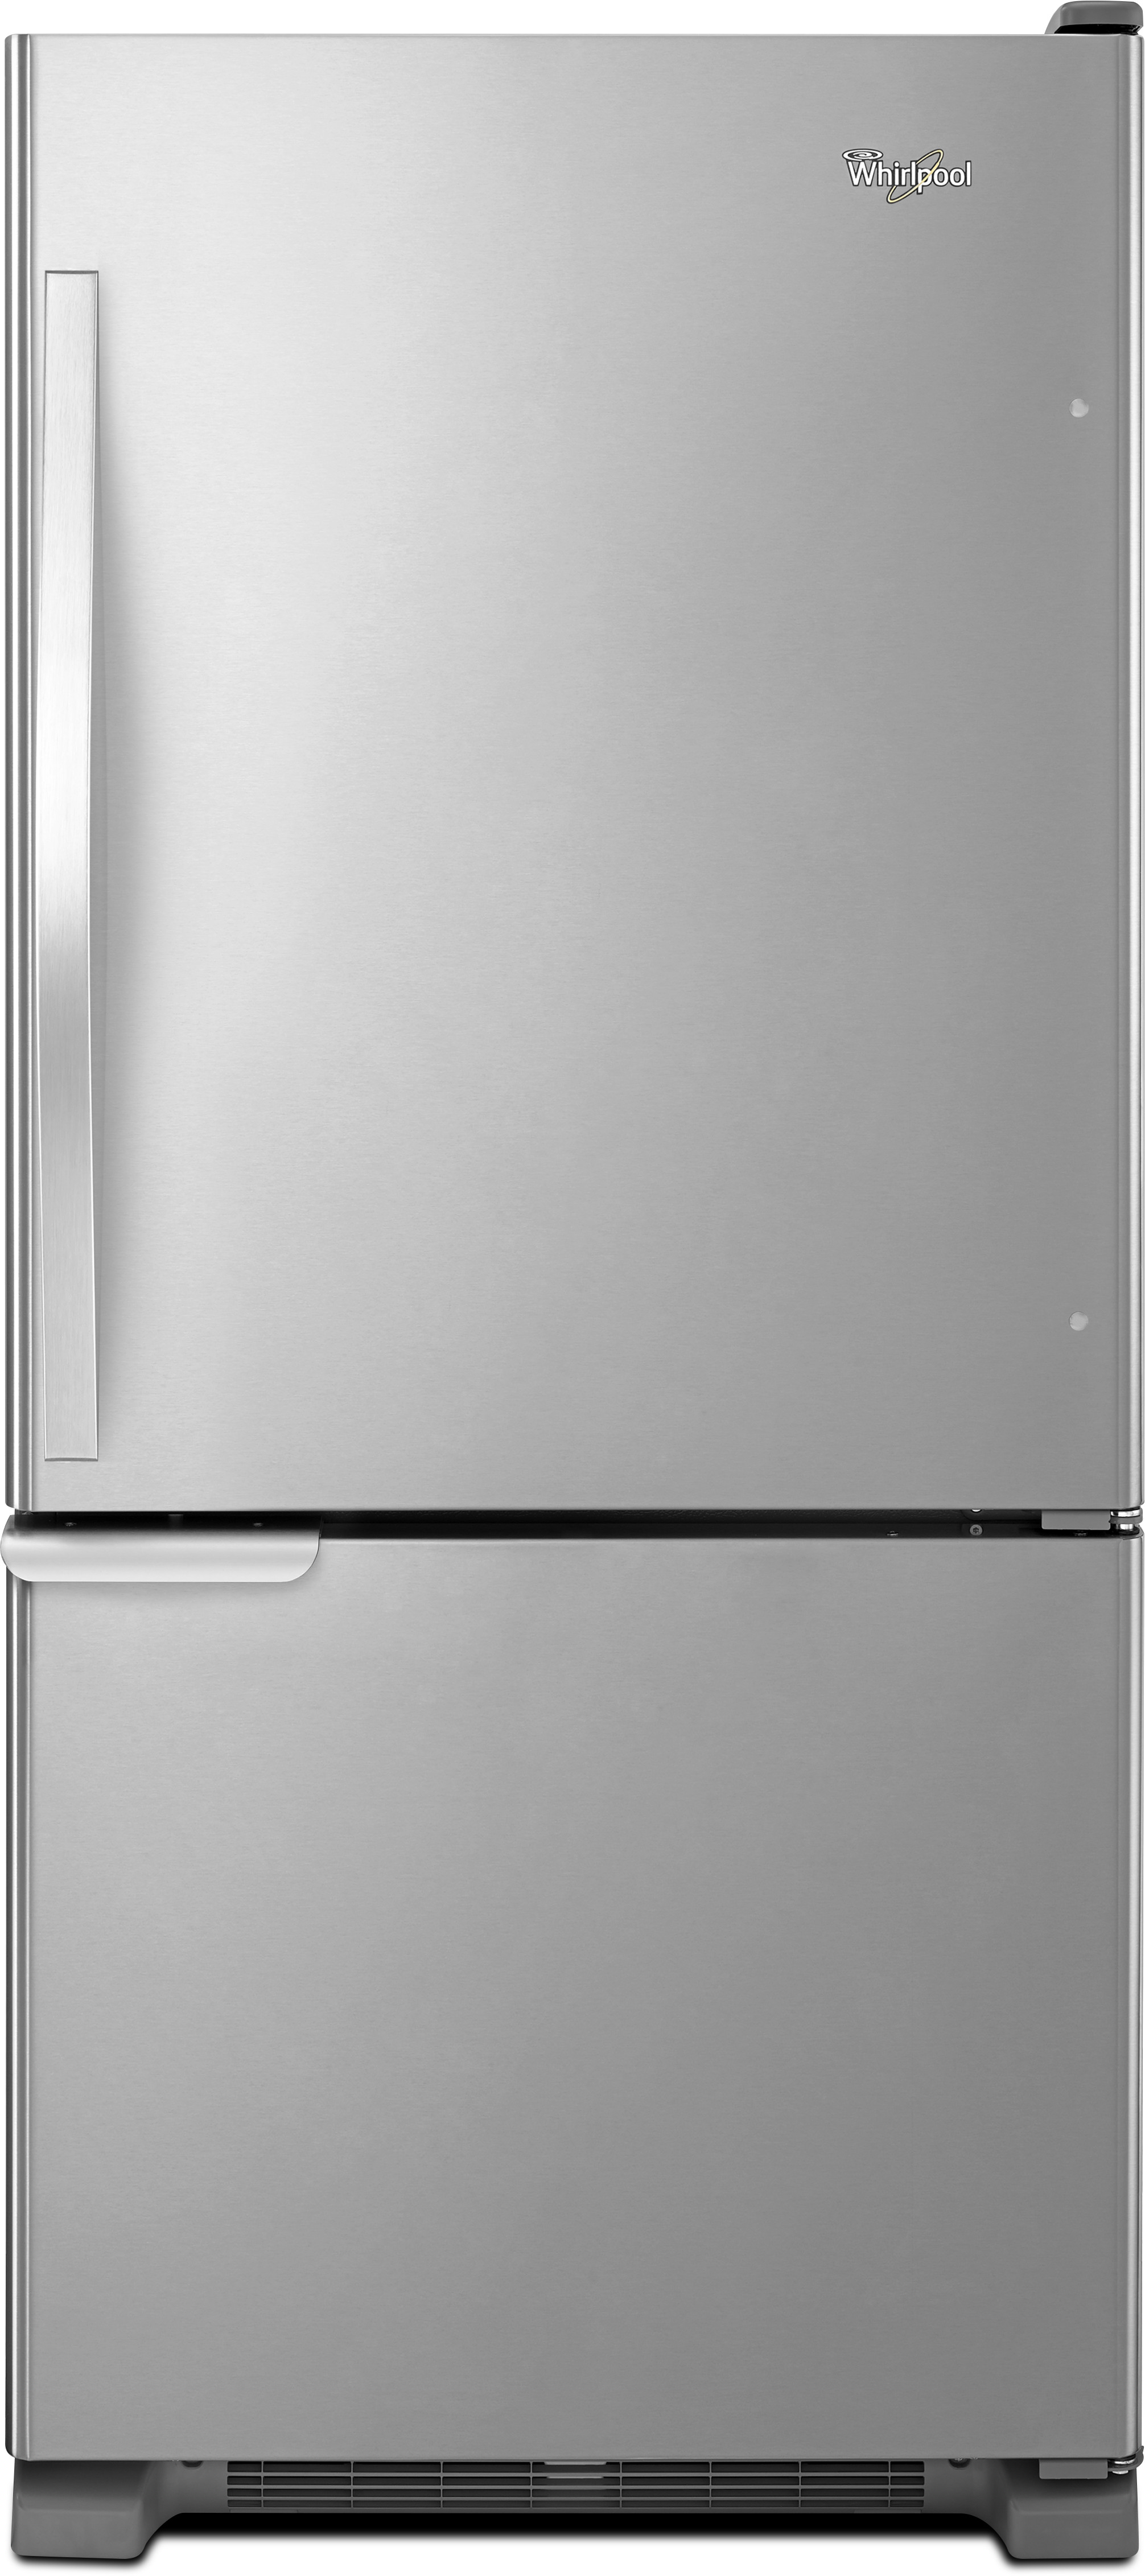 Ge 30 inch side by side white refrigerator - Ge 30 Inch Side By Side White Refrigerator 46